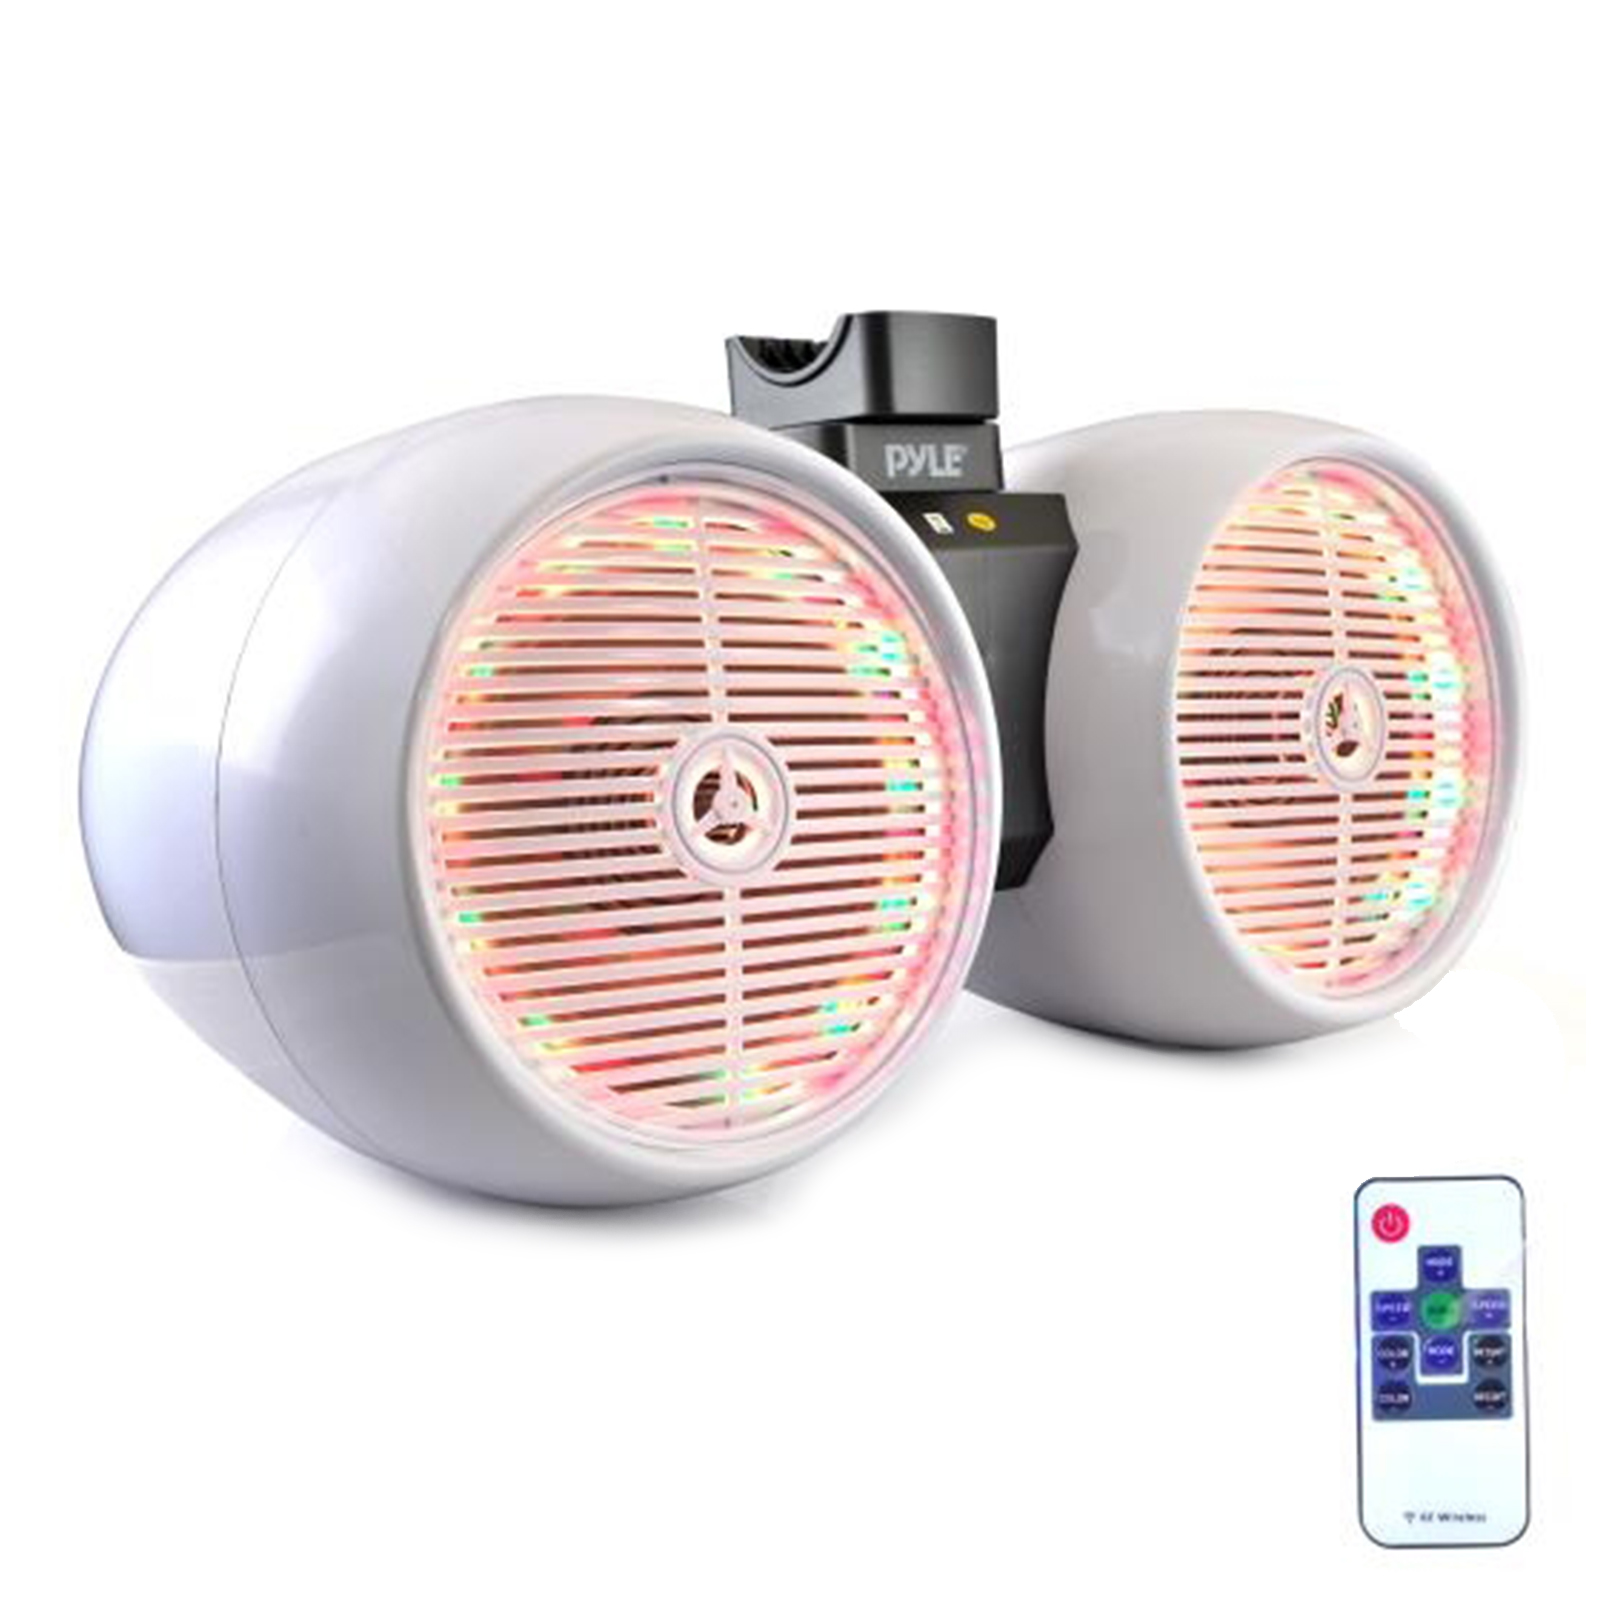 """Dual Marine Tower Speakers, Wakeboard Water Resistant Sound System, Built-in Programmable Multi-Color LED Lights, 600 Watt 8"""" Tower Speakers, Remote Control, White"""